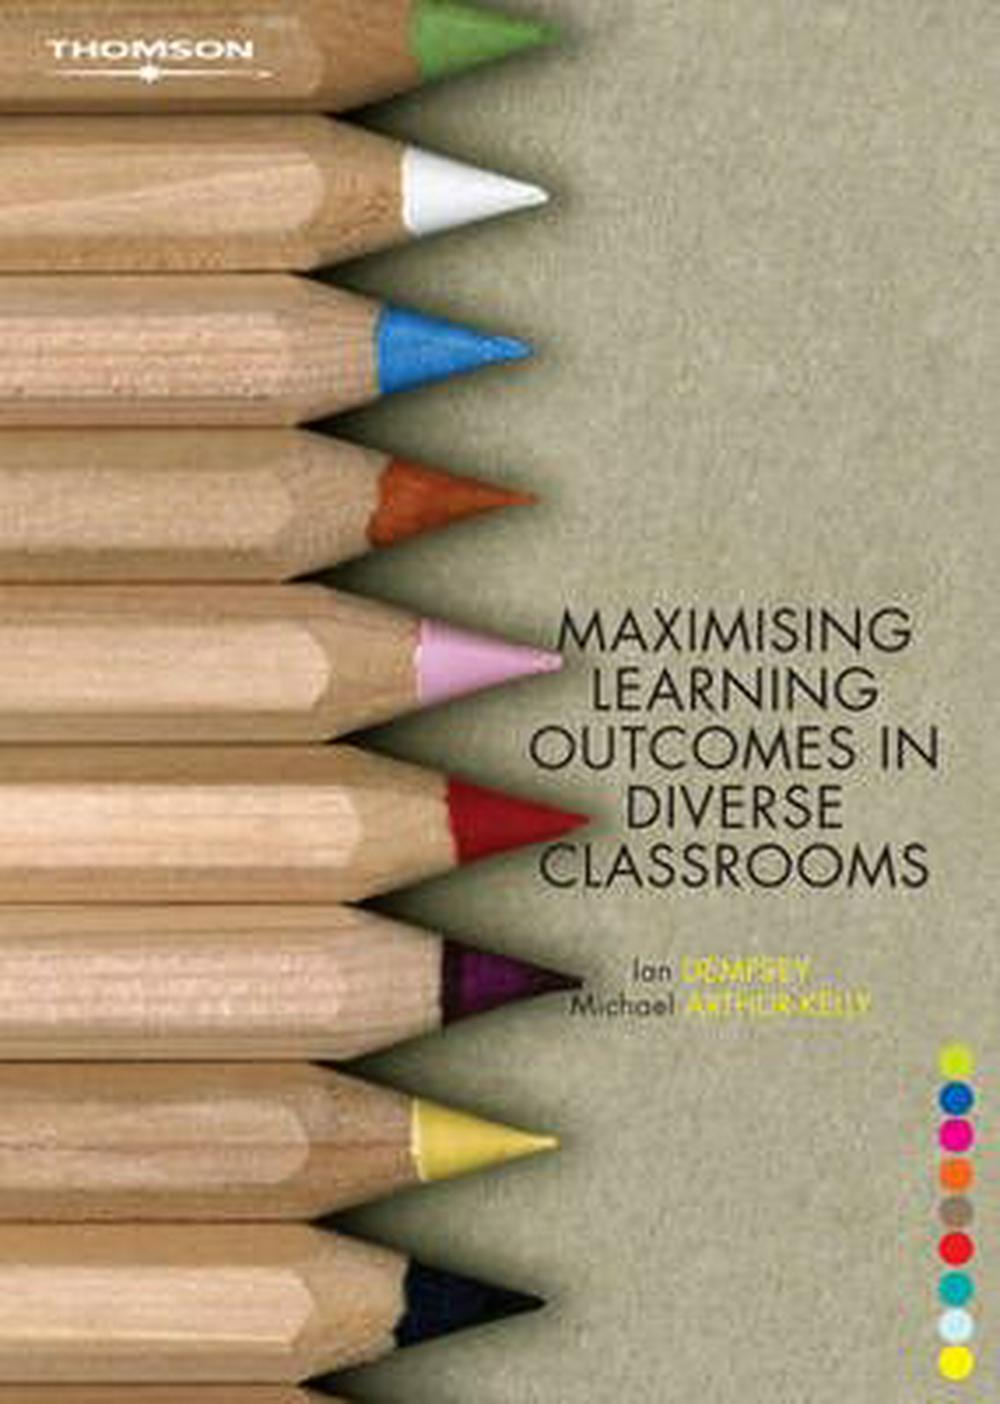 Maximising Learning Outcomes in Diverse Classrooms by Ian Dempsey, ISBN: 9780170129794